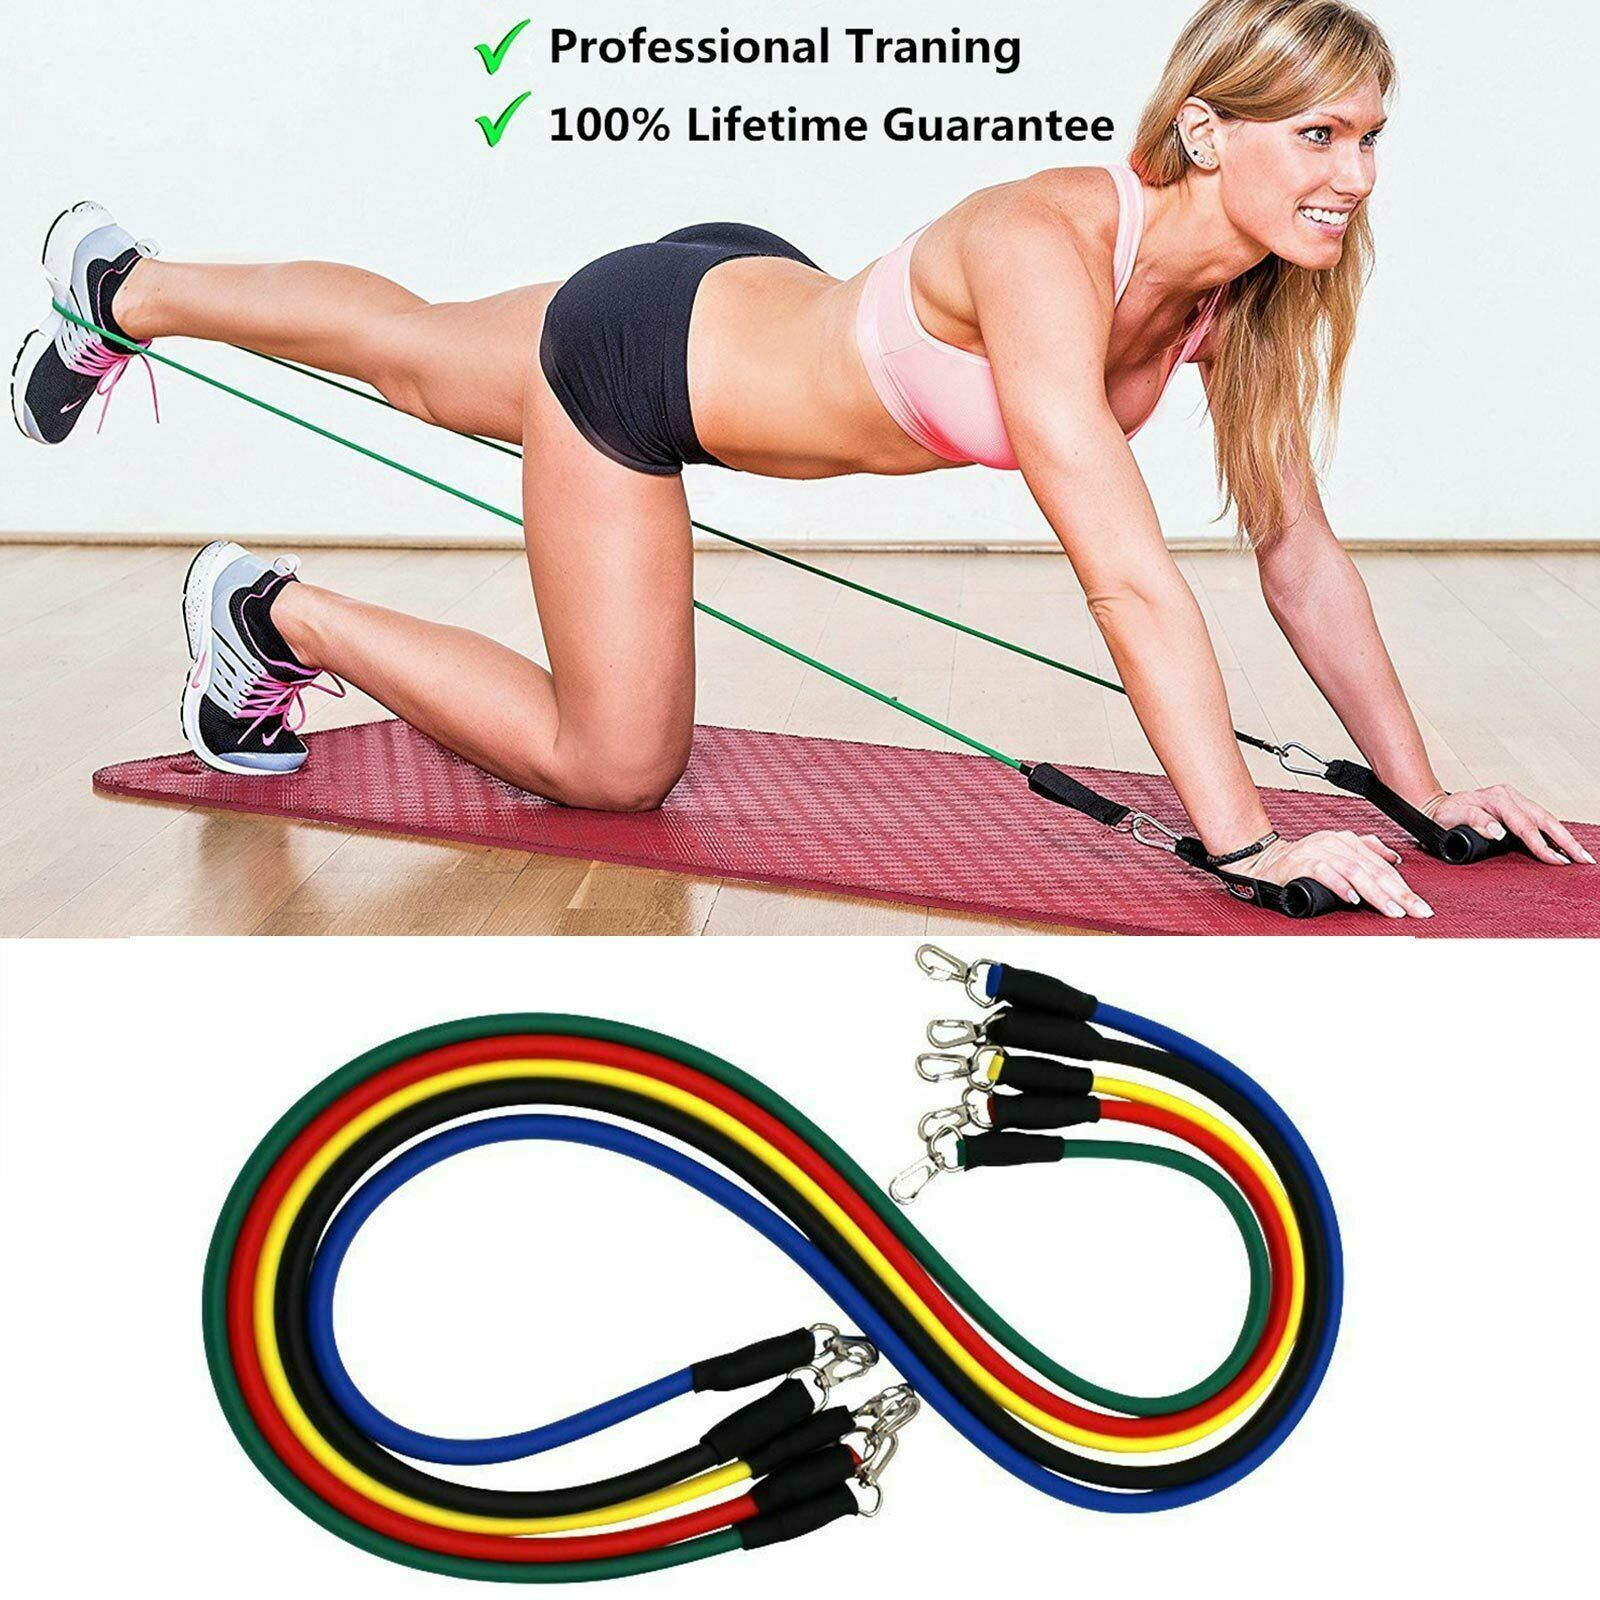 11 Pieces Resistance Trainer Set Exercise Fitness Tube Gym Workout Bands Yoga 5